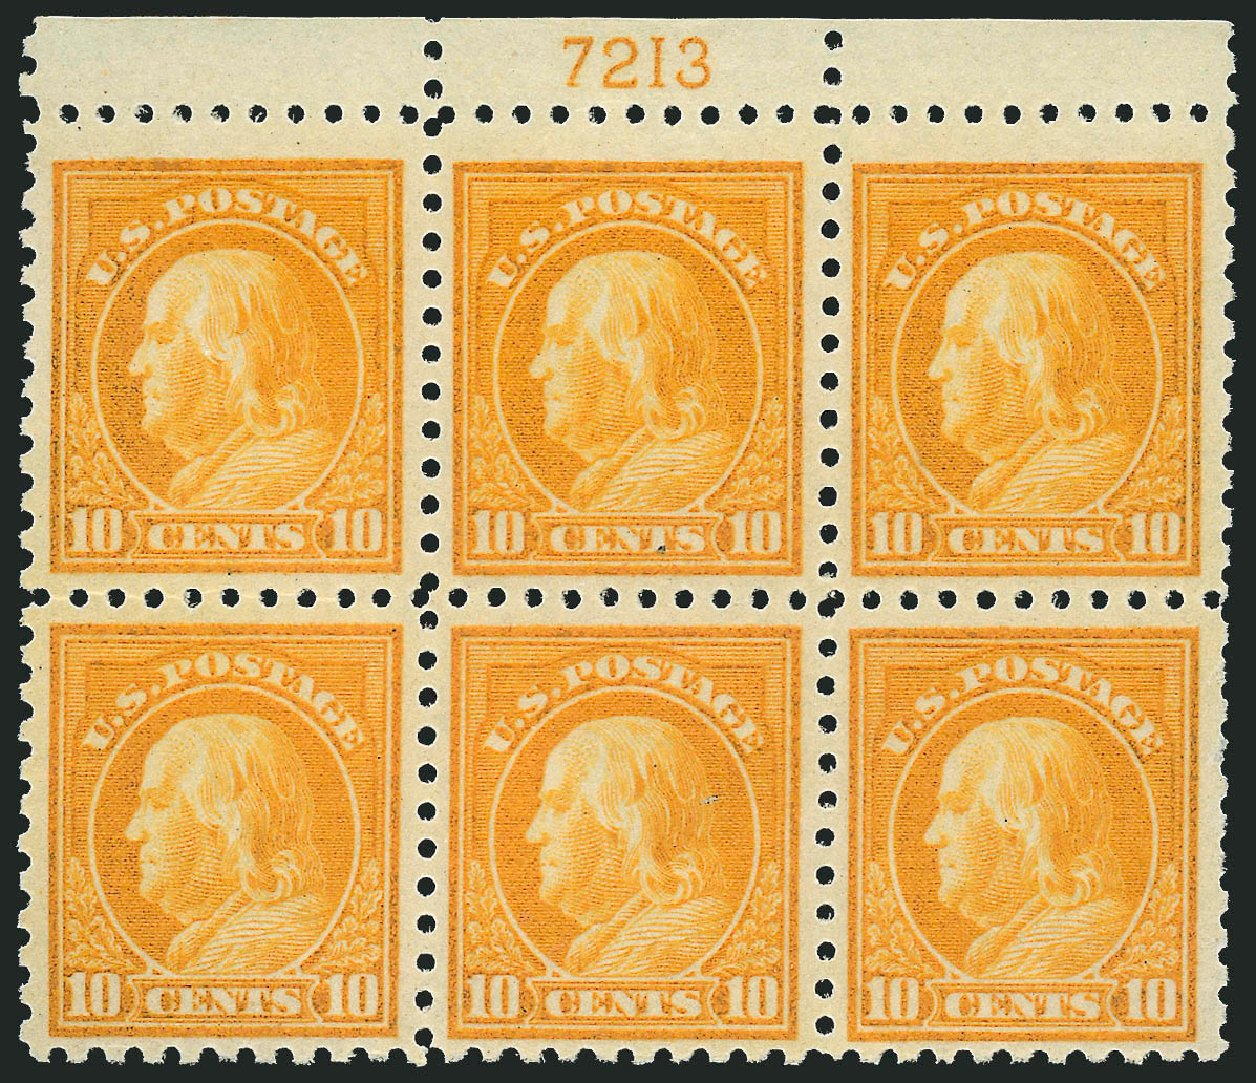 US Stamps Price Scott Cat. 472 - 10c 1916 Franklin Perf 10. Robert Siegel Auction Galleries, Sep 2014, Sale 1078, Lot 549